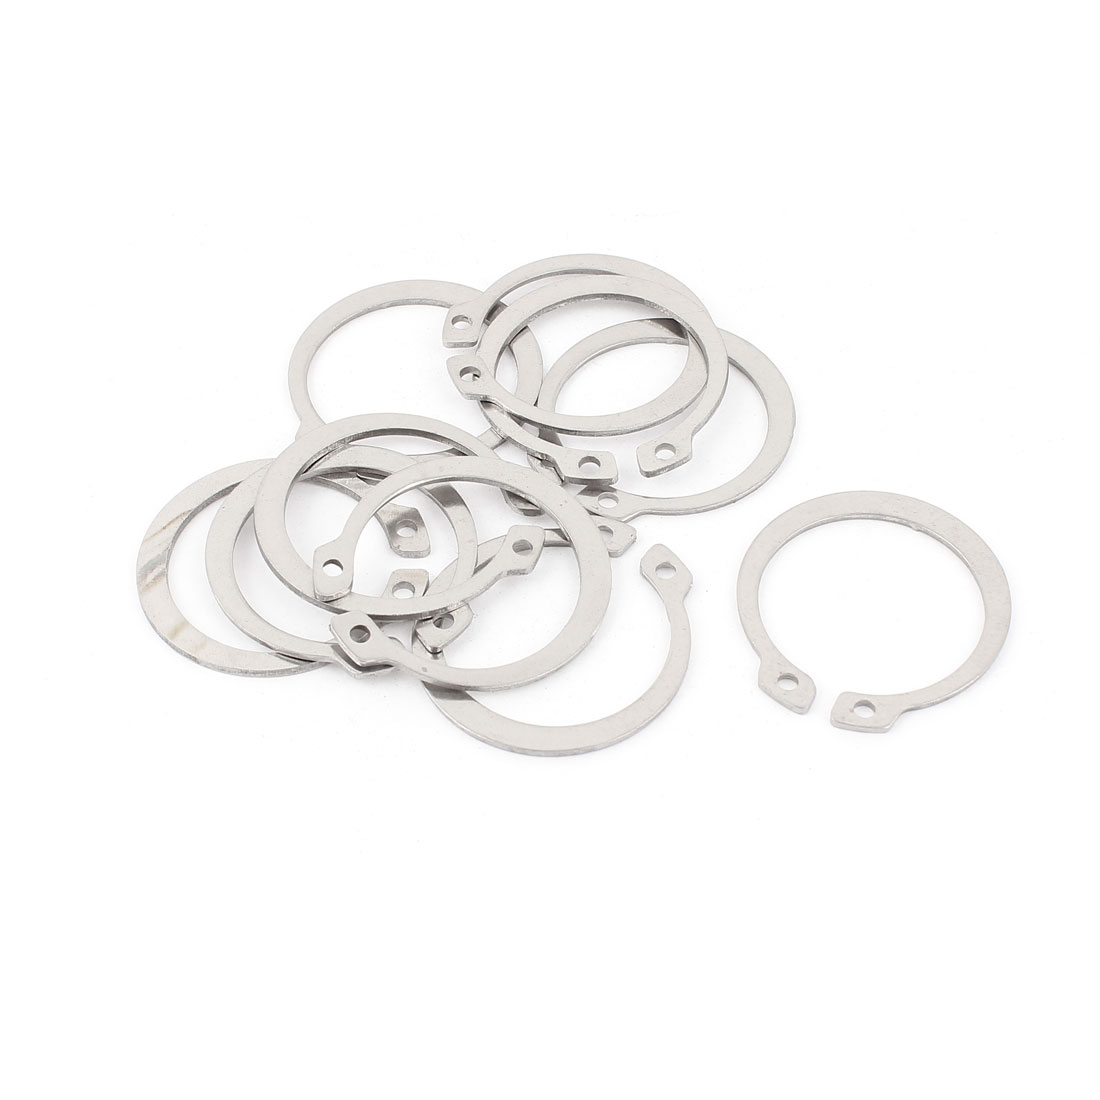 10pcs 304 Stainless Steel External Circlip Retaining Shaft Snap Rings 34mm